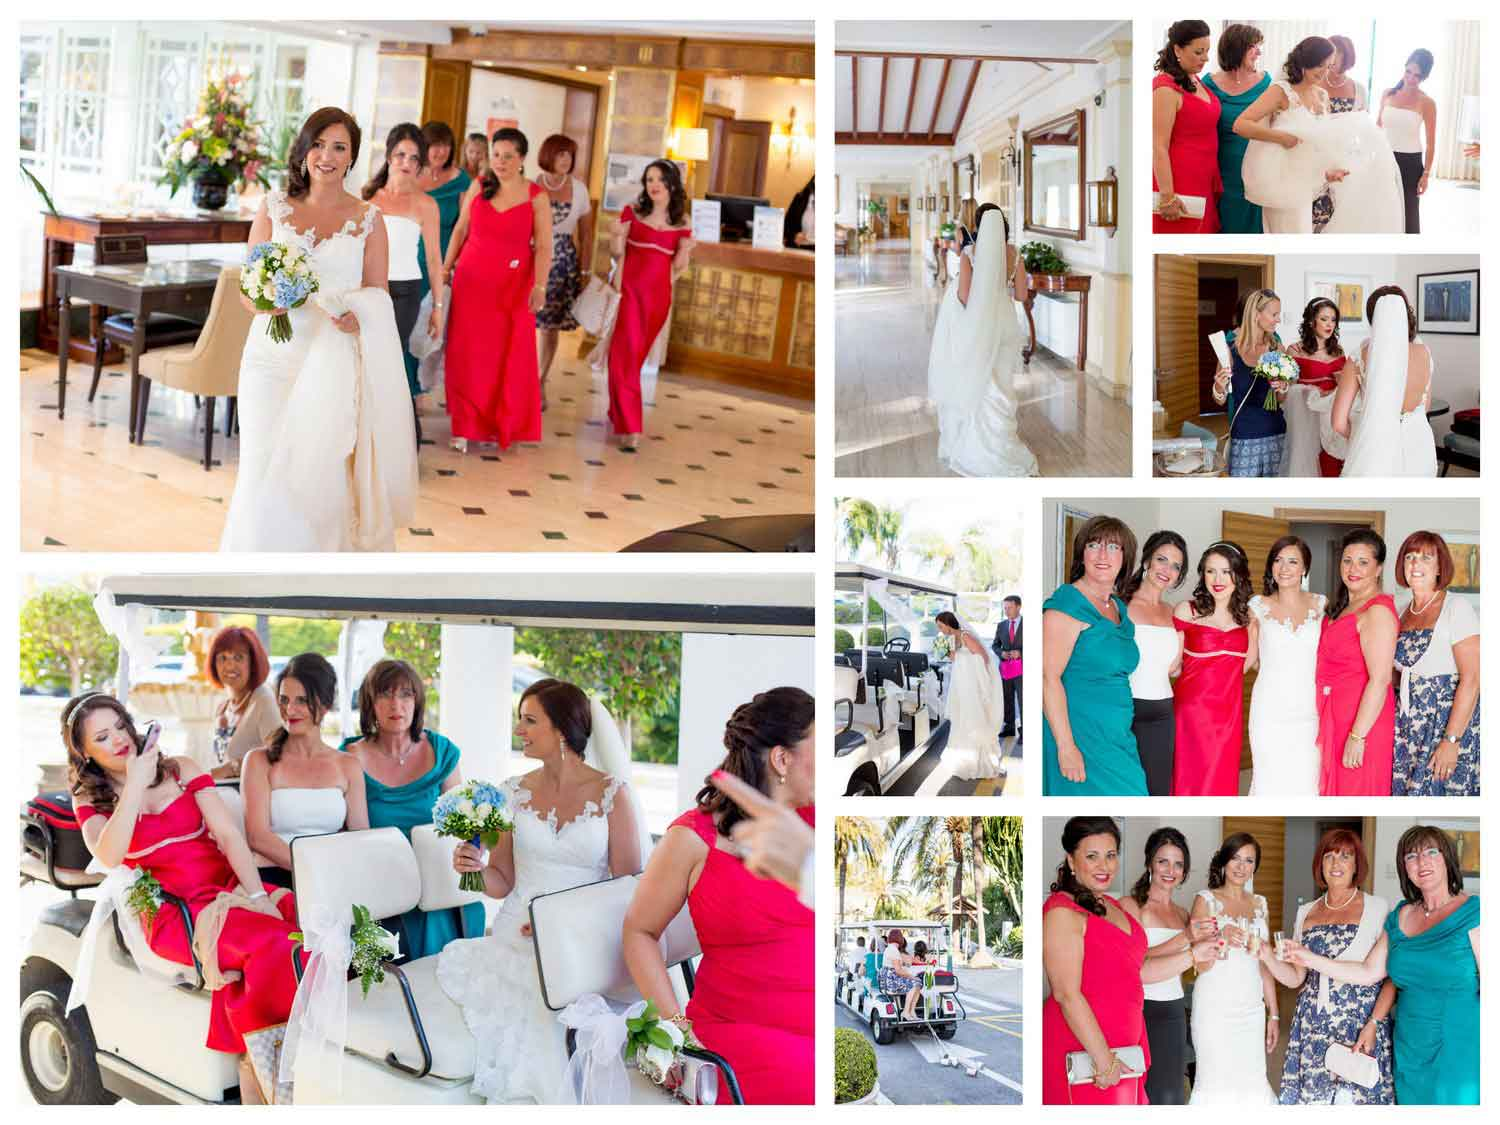 Getting ready wedding marbella